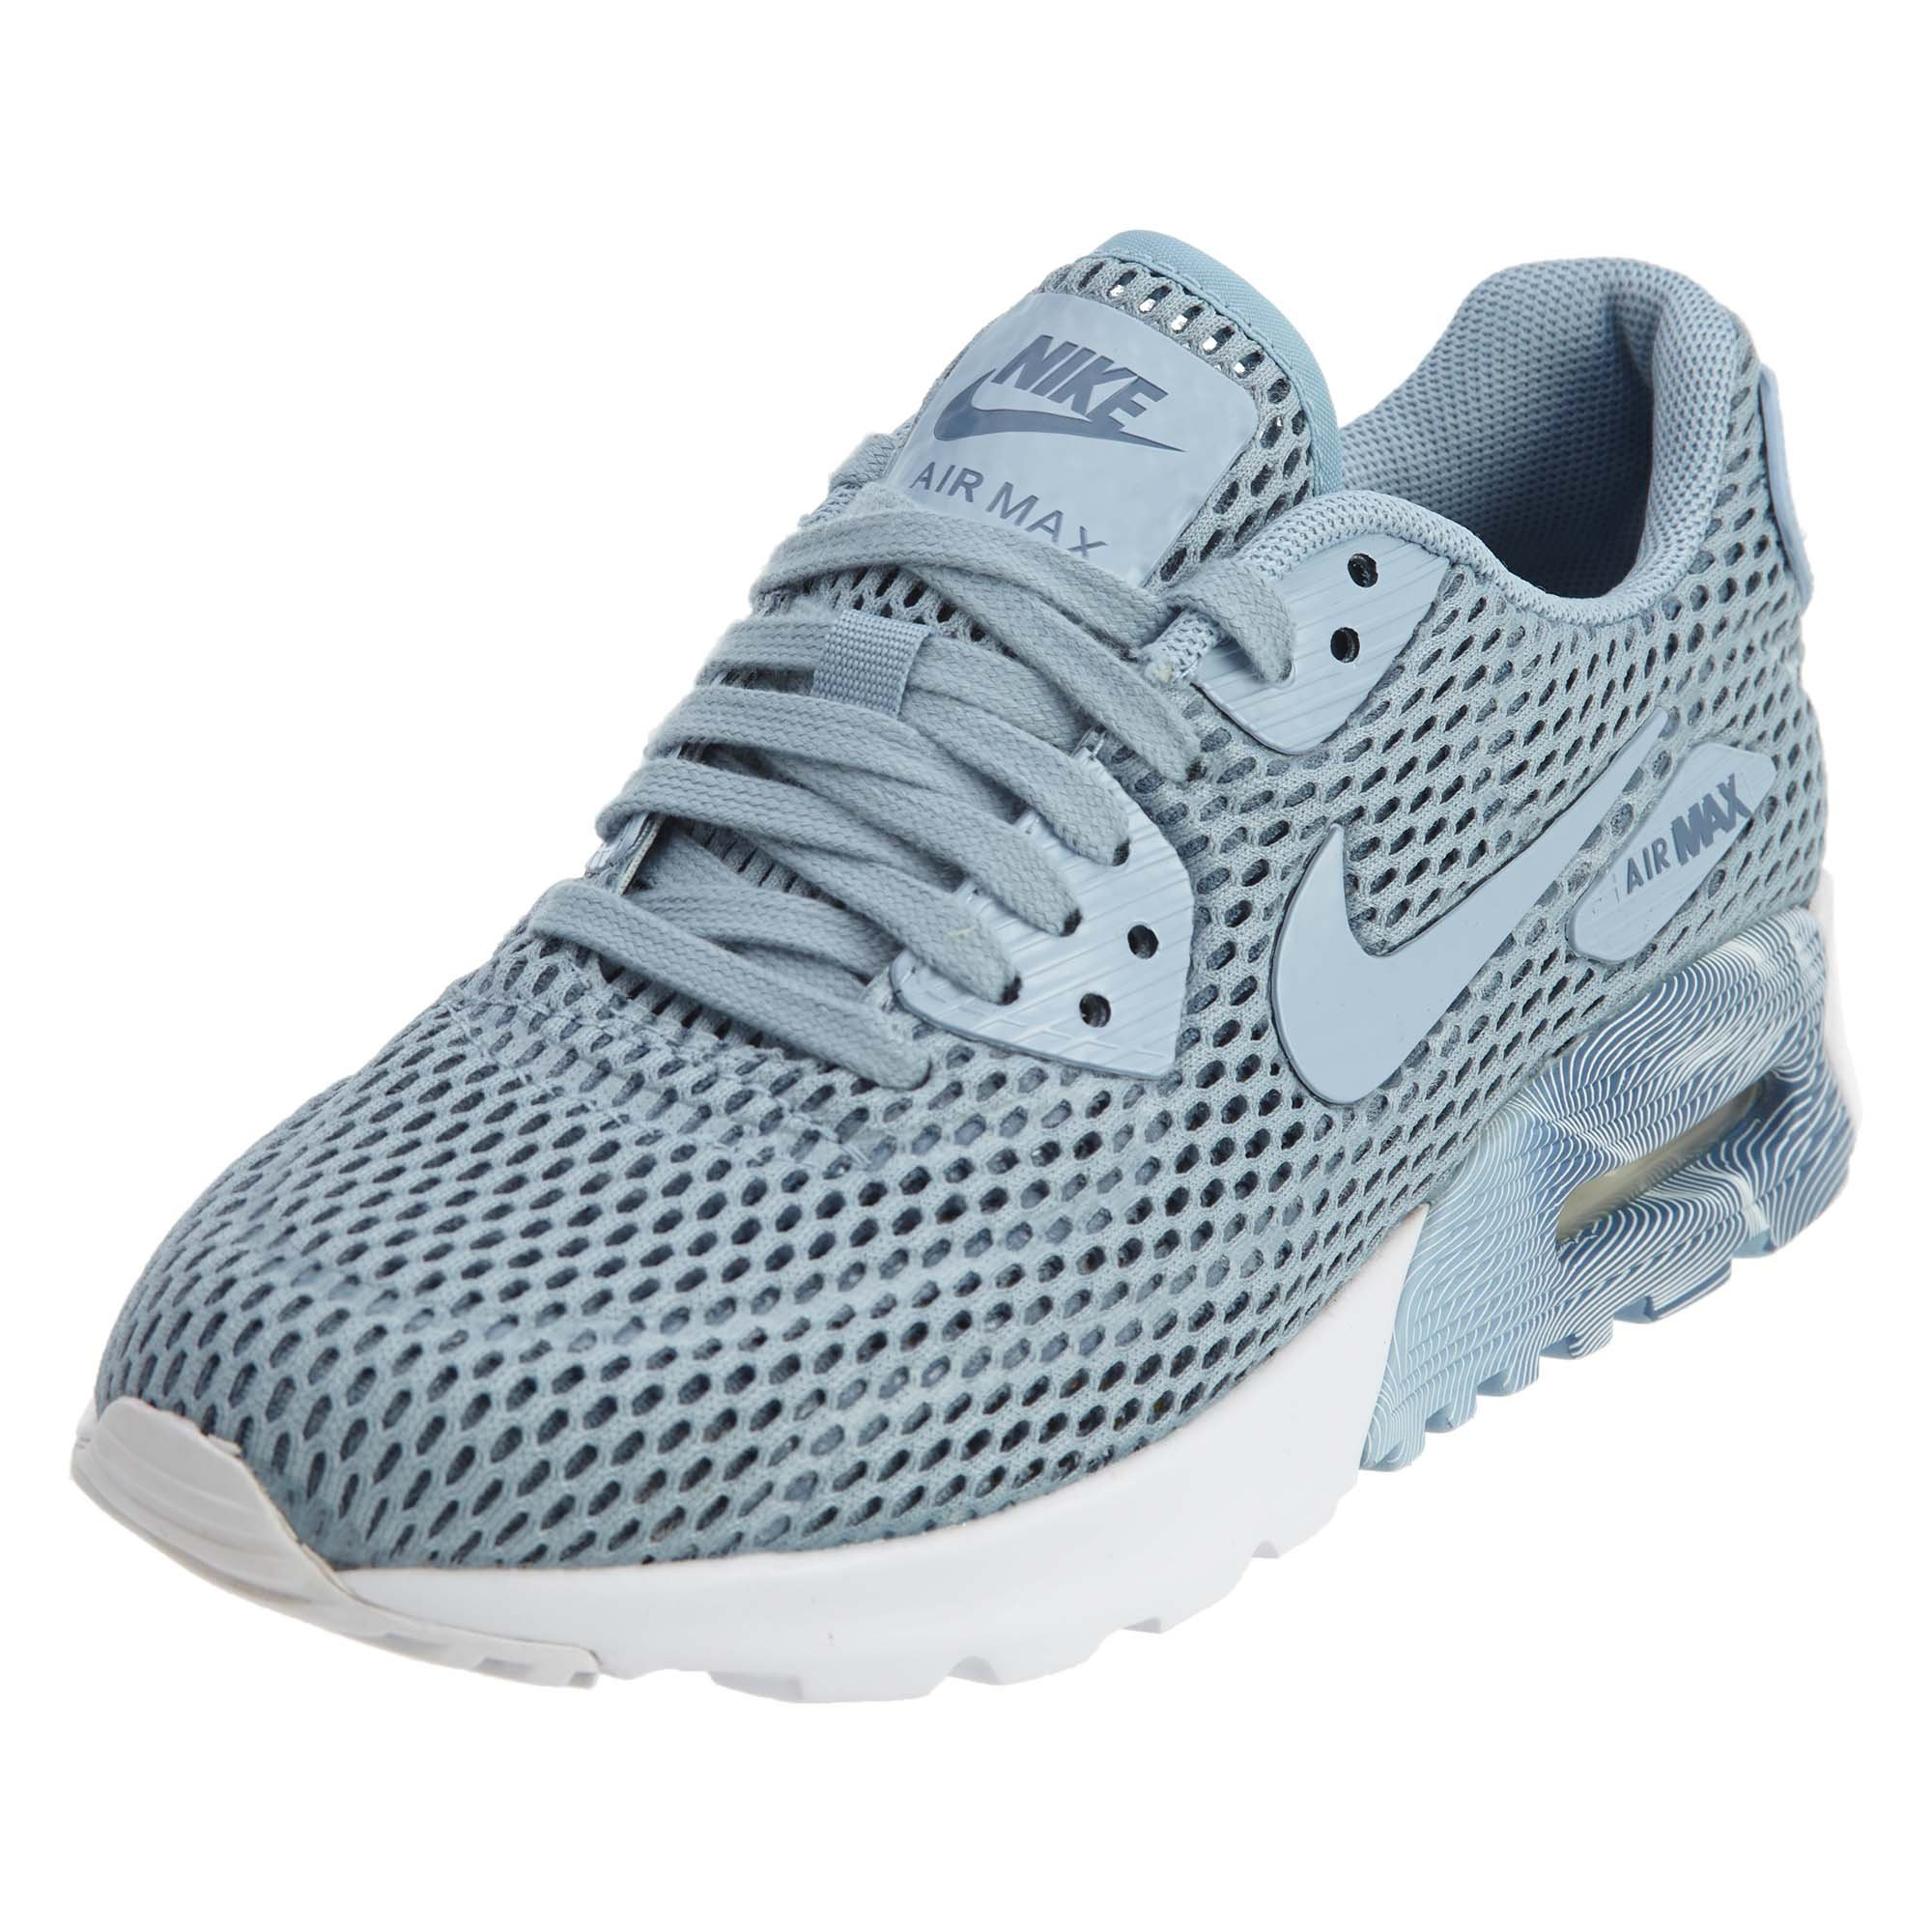 Nike Air Max 90 Ultra Br Womens Style : 725061-402 Size : 7.5 B(M) US